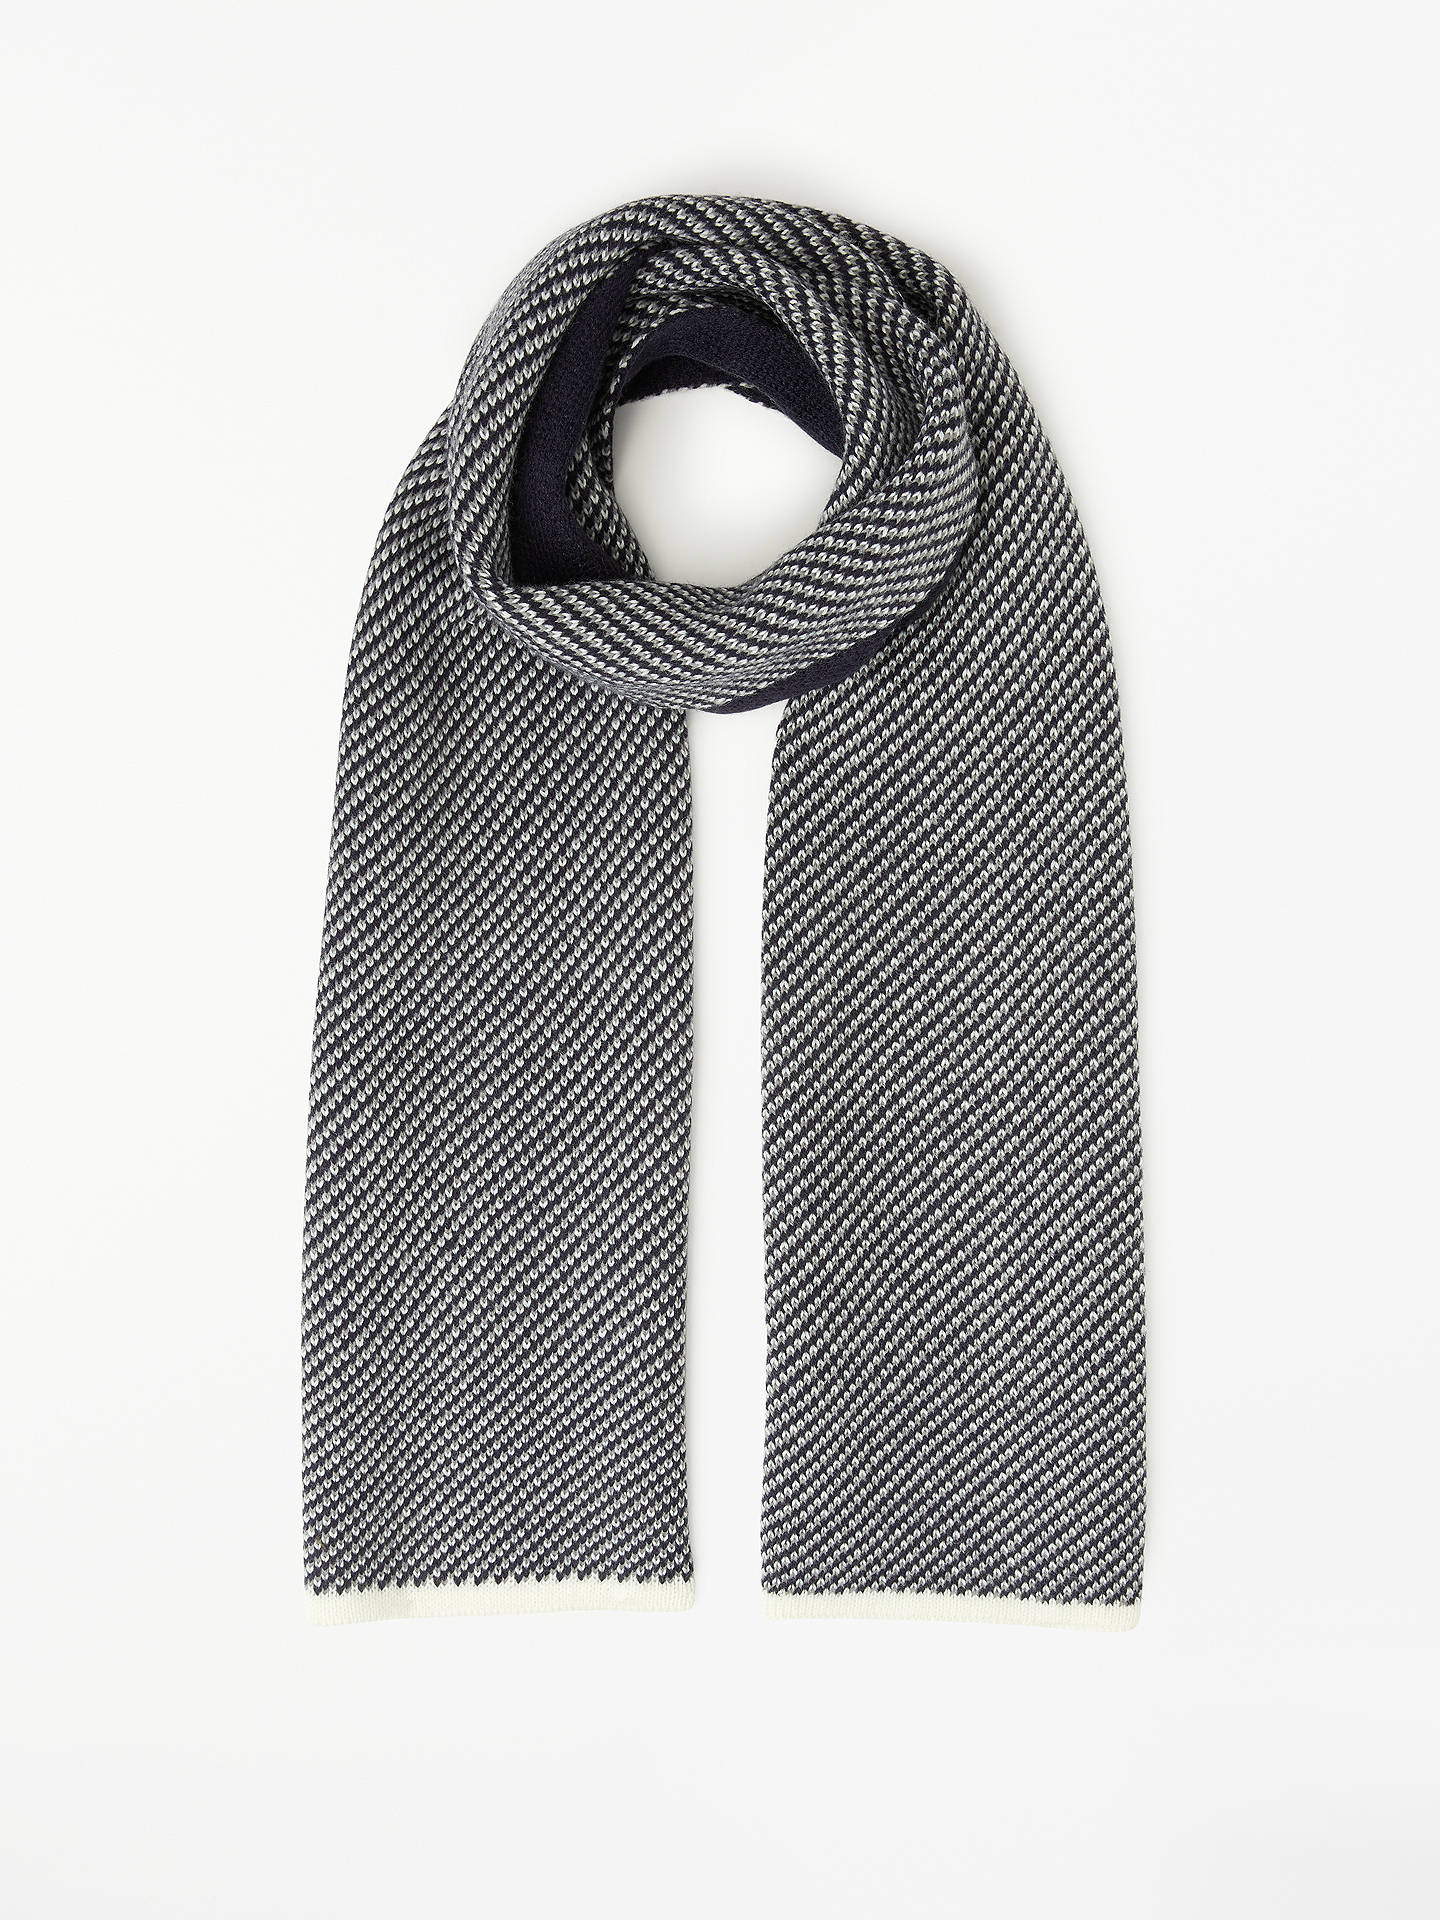 BuyJohn Lewis & Partners Diagonal Knit Scarf, Blue Online at johnlewis.com